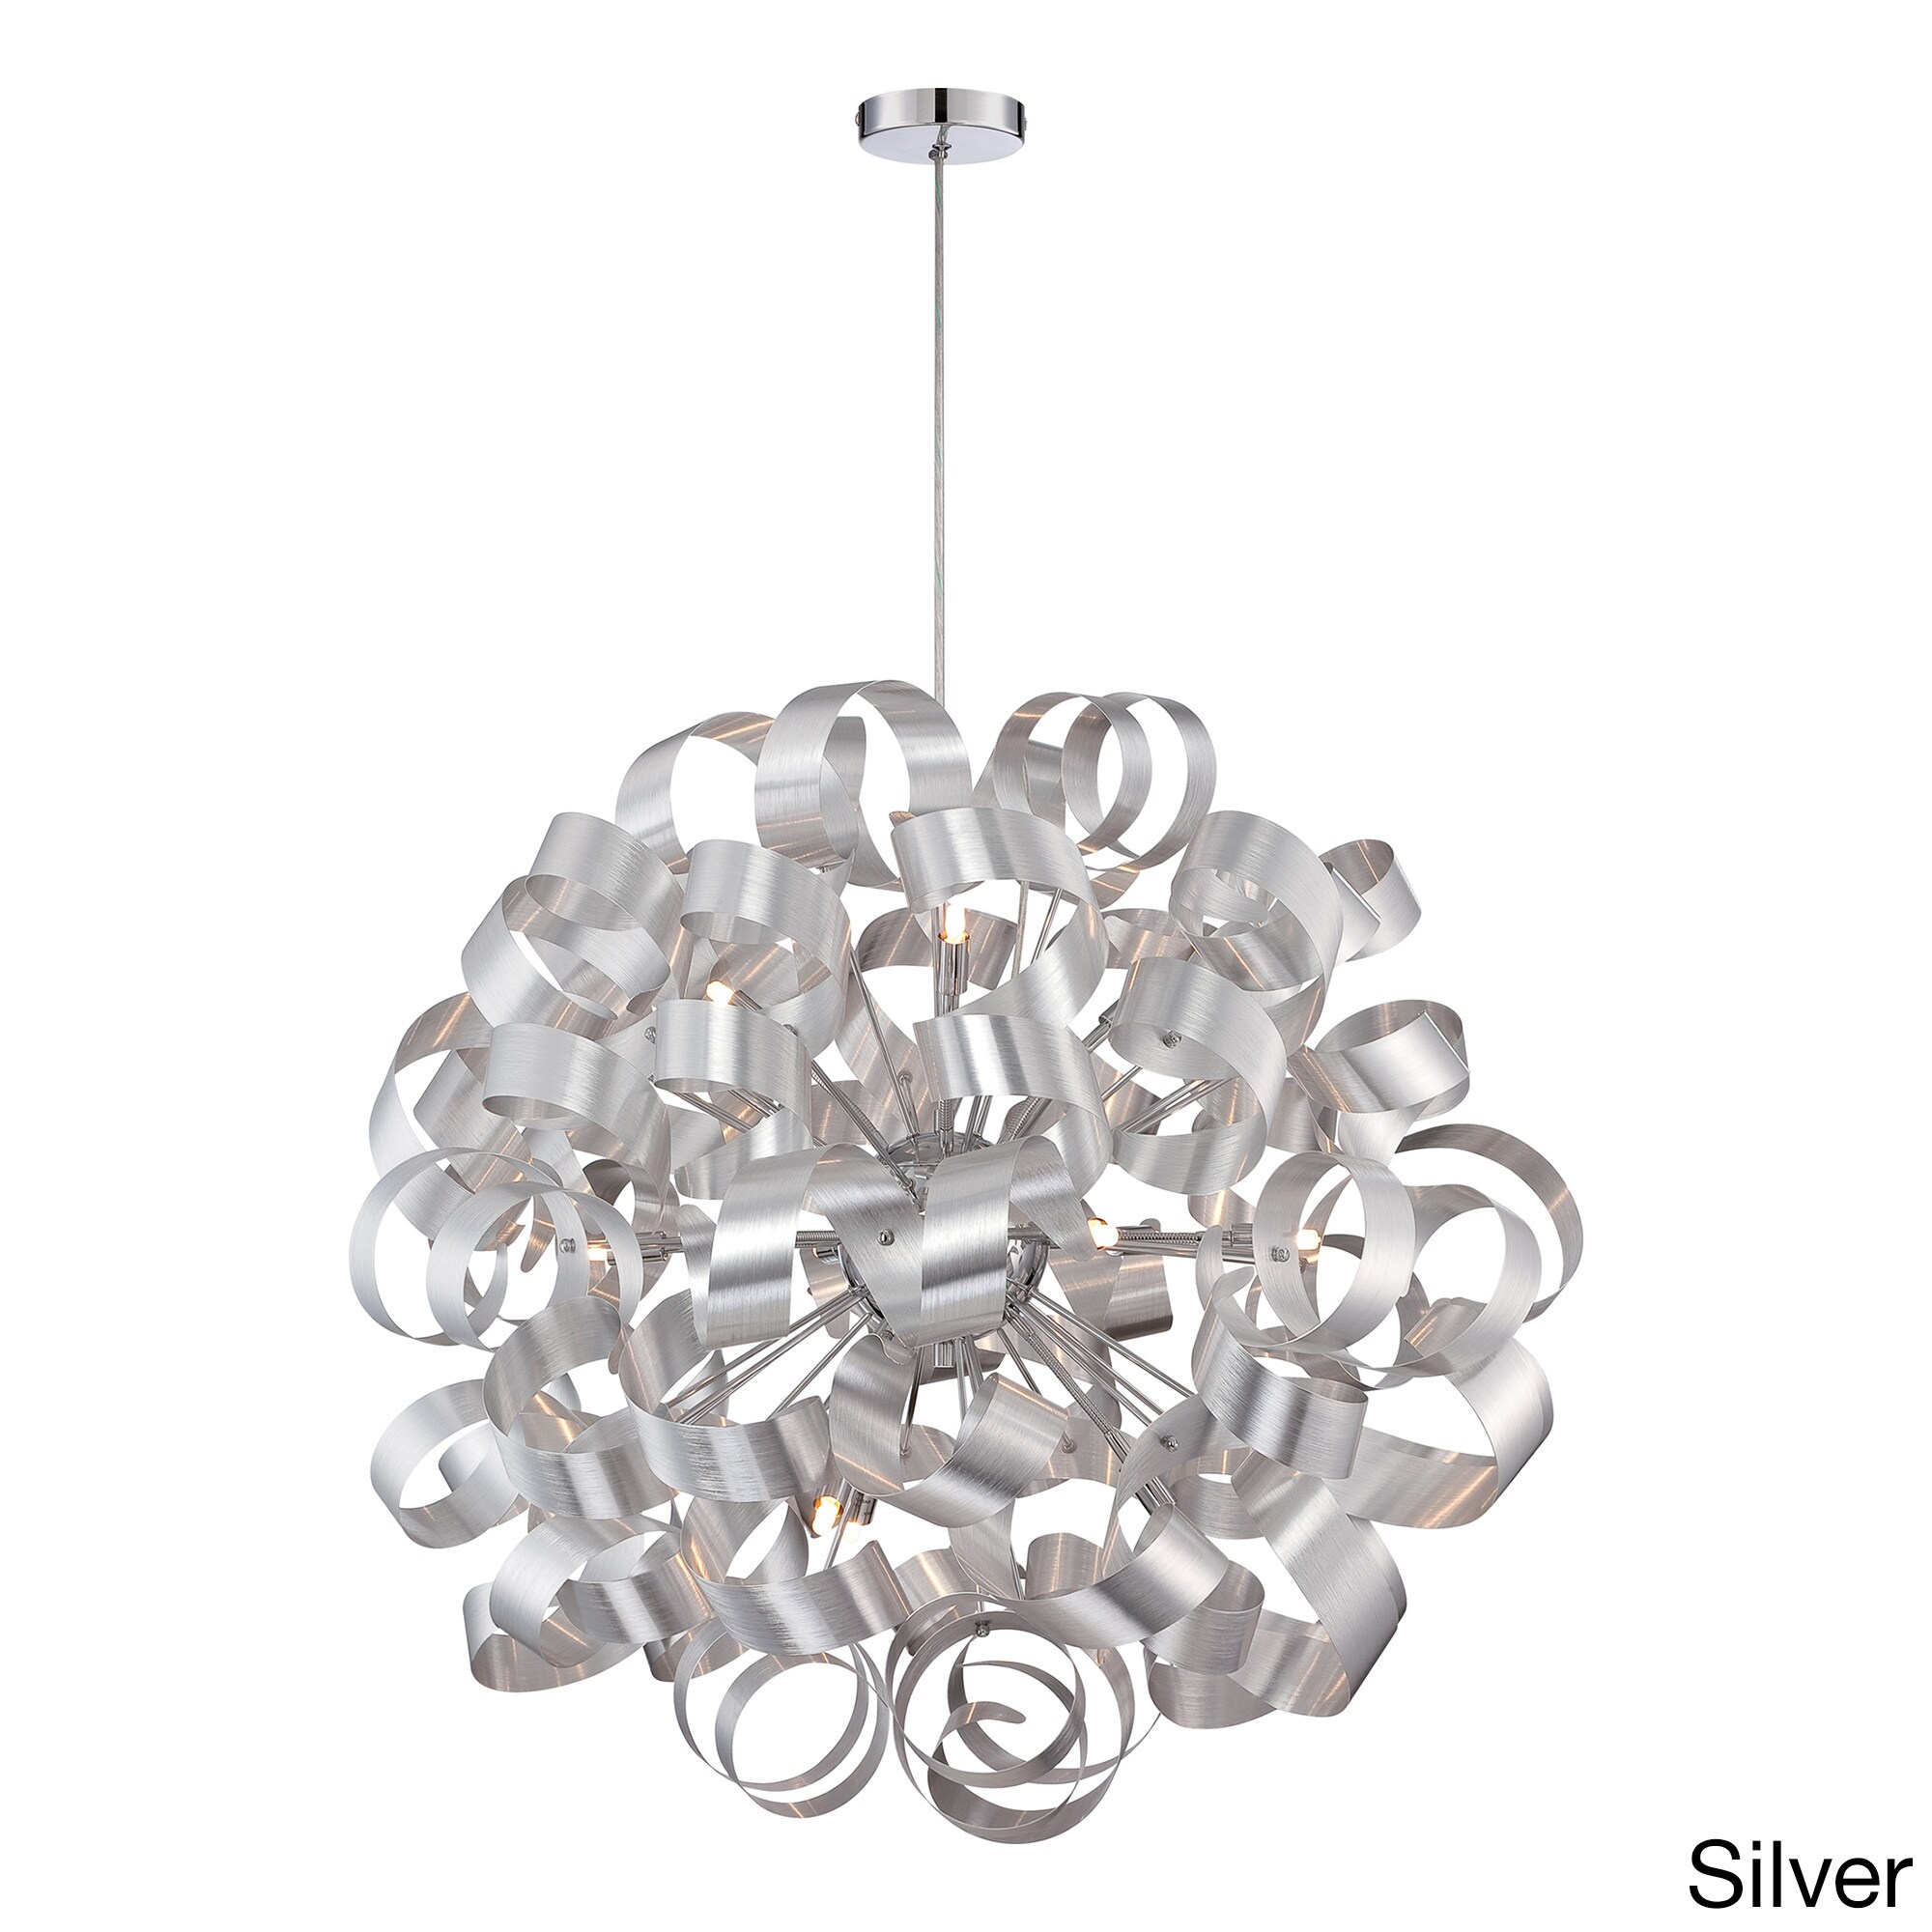 Quoize 12 light Ribbon Curled Steel Pendant Free Shipping